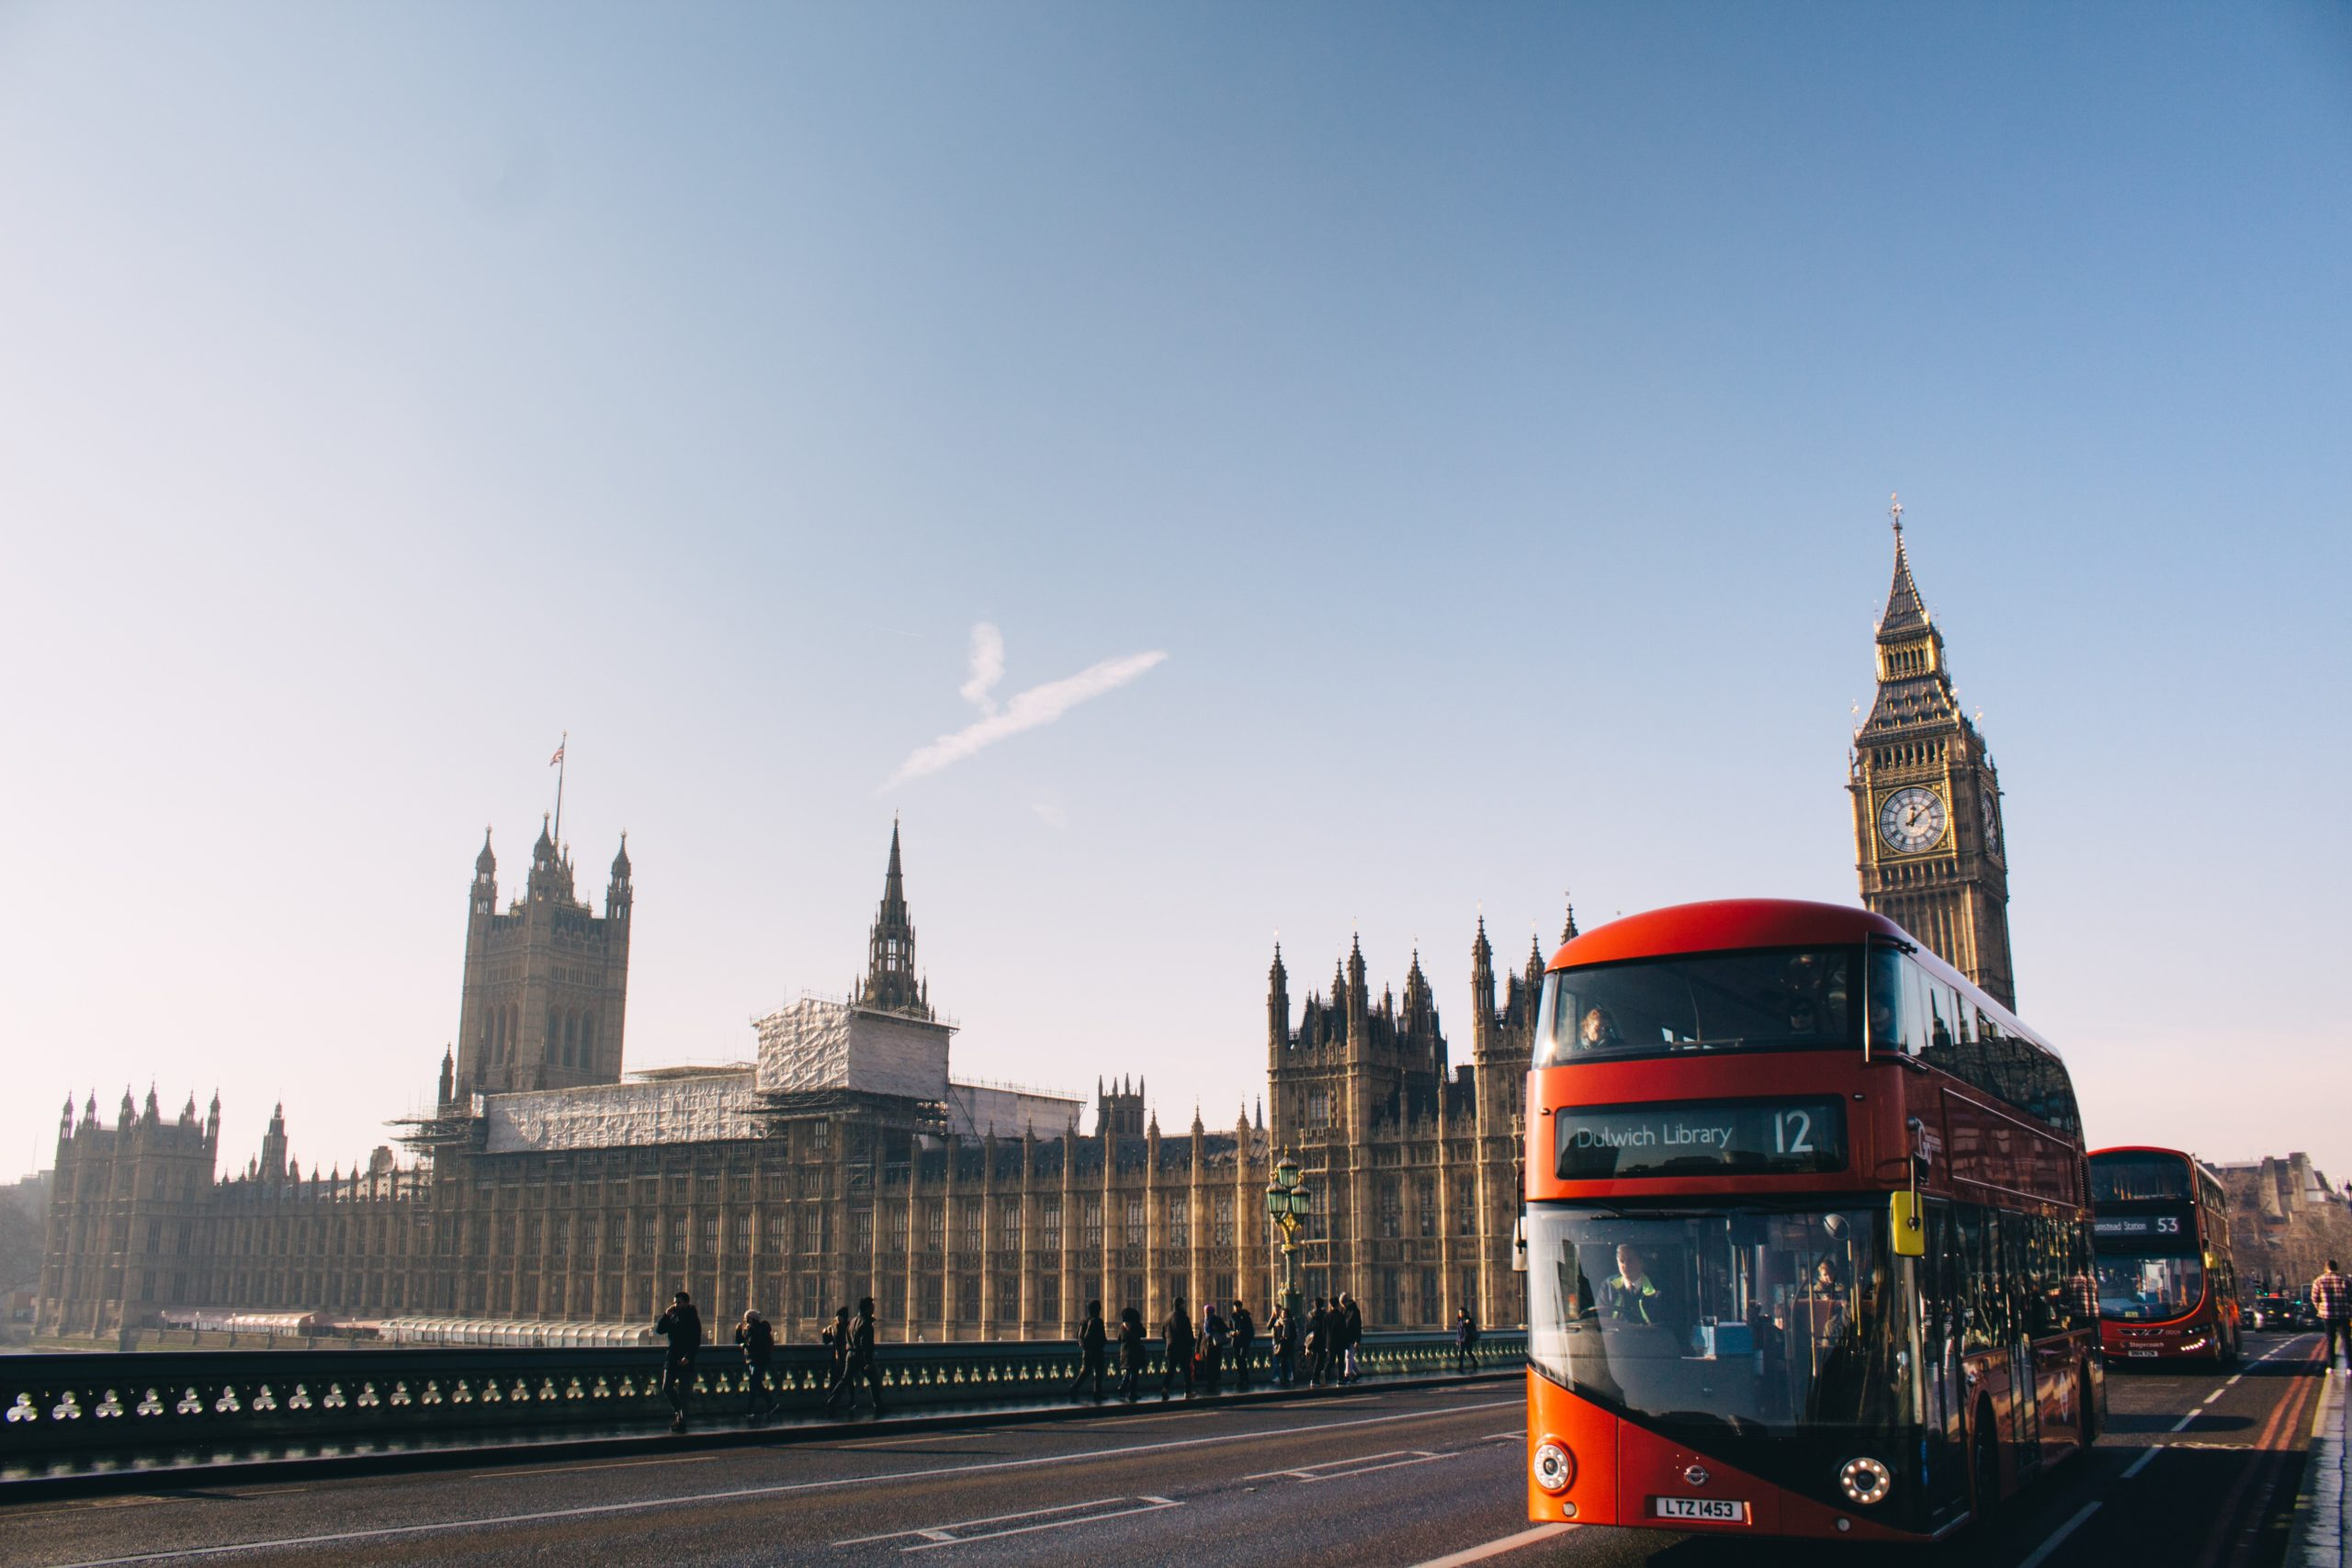 big-ben-double-decker-bus-londyn-angielski-drenglish